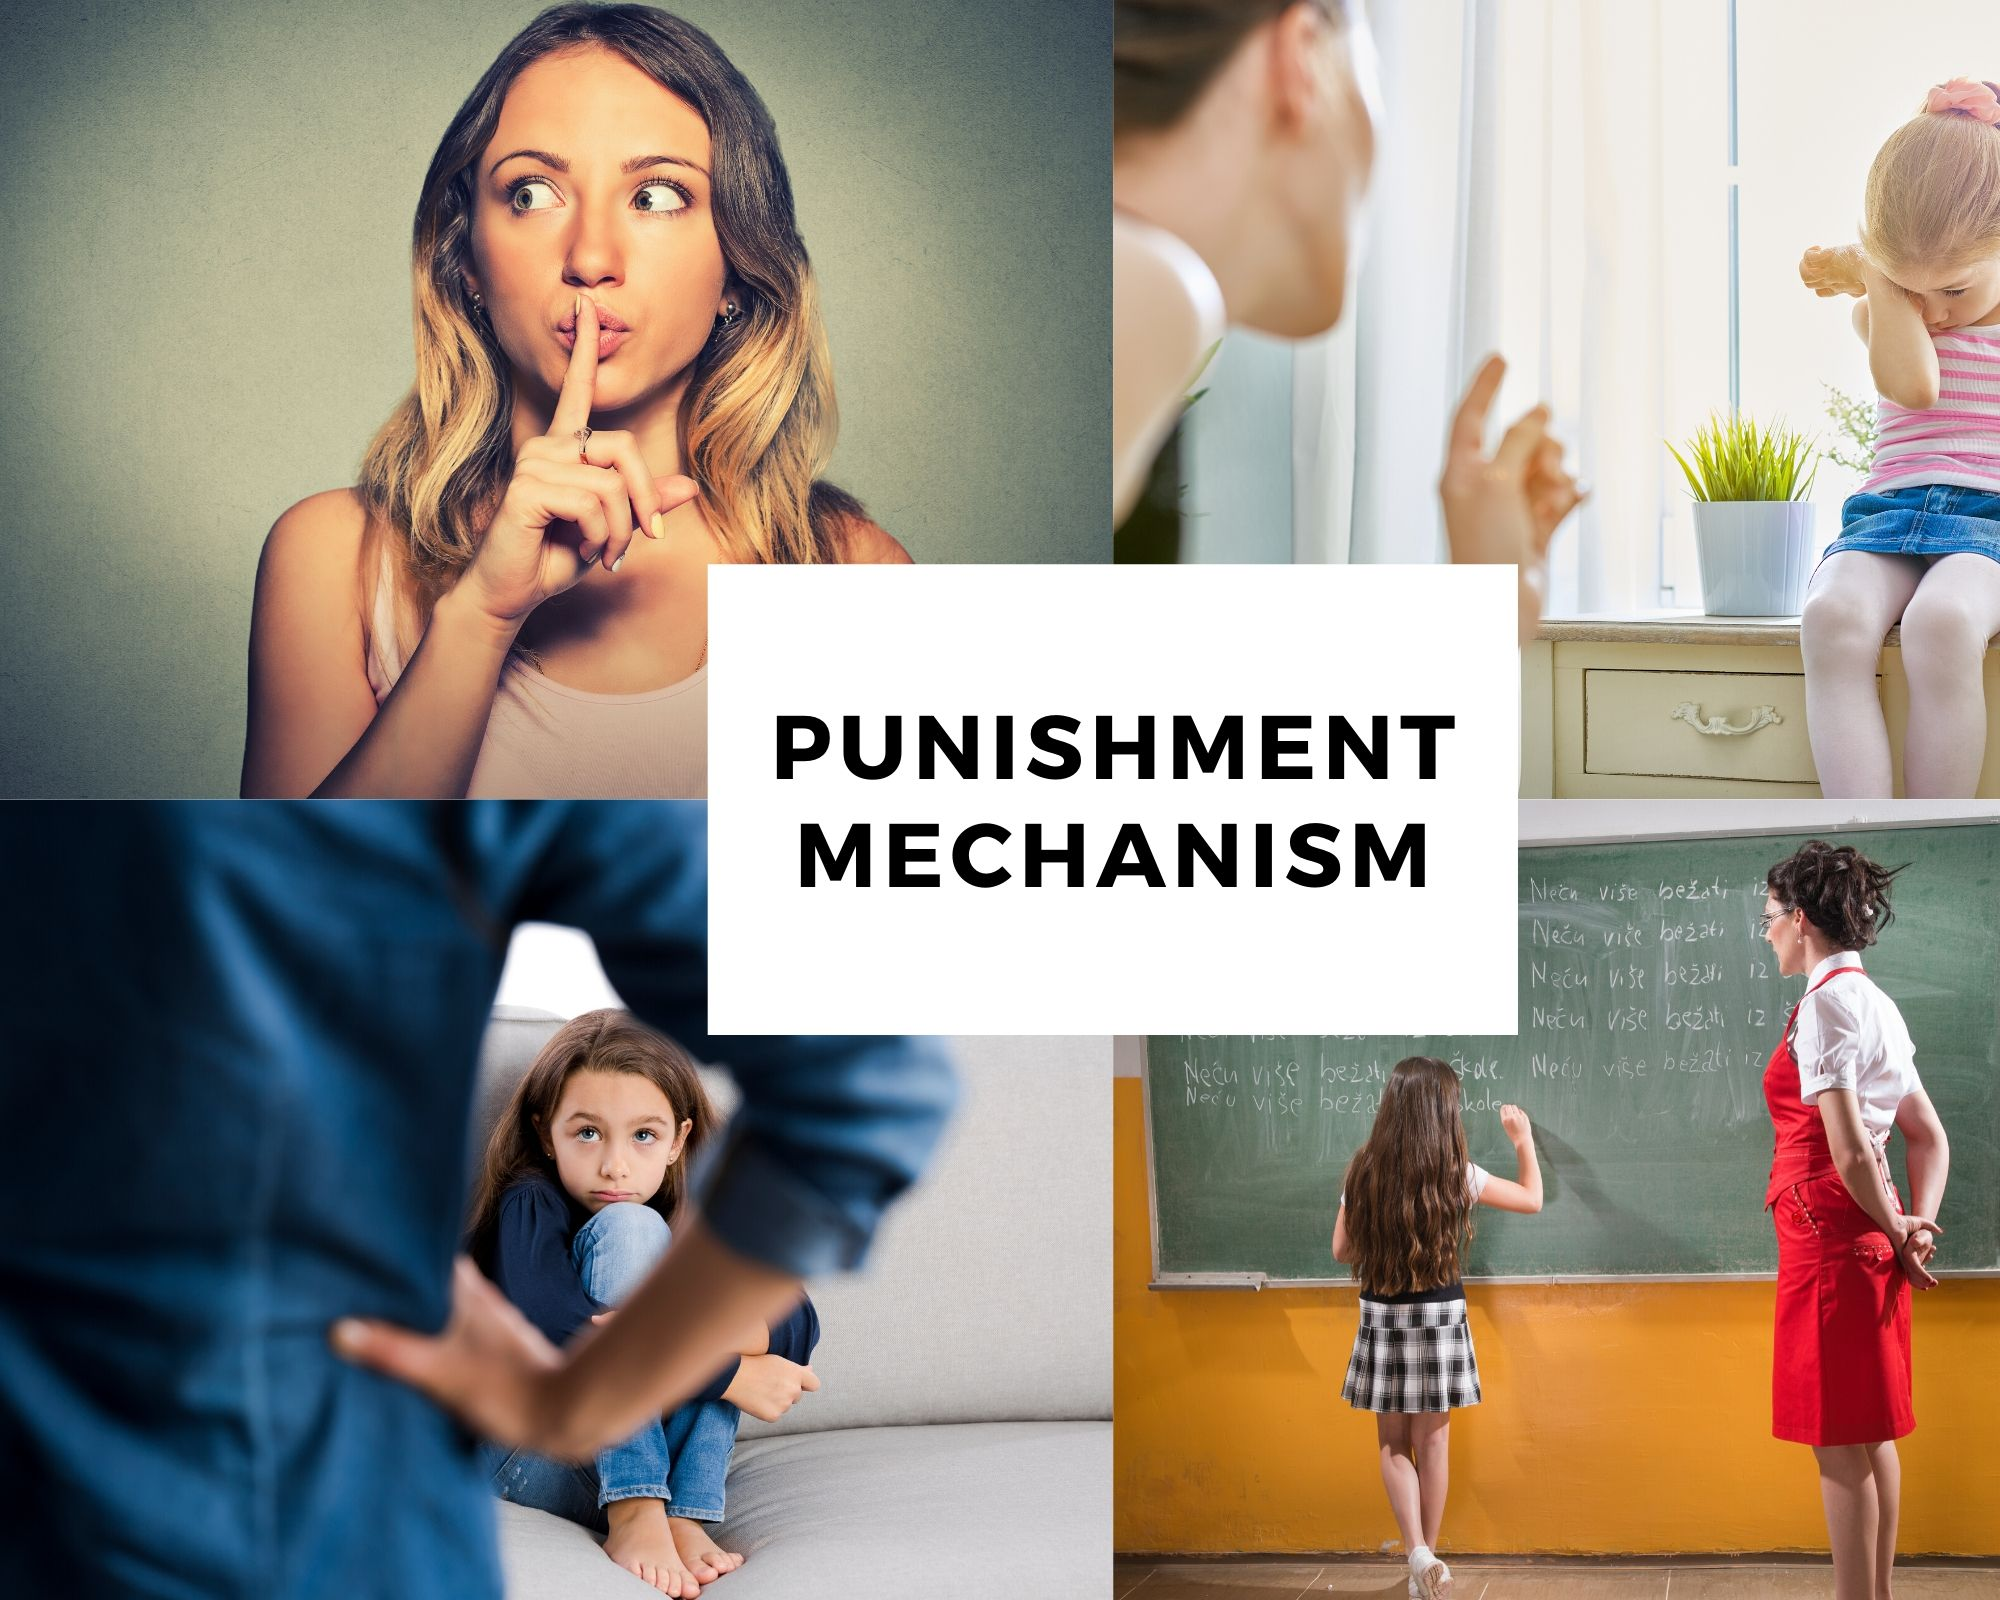 Punishment mechanism